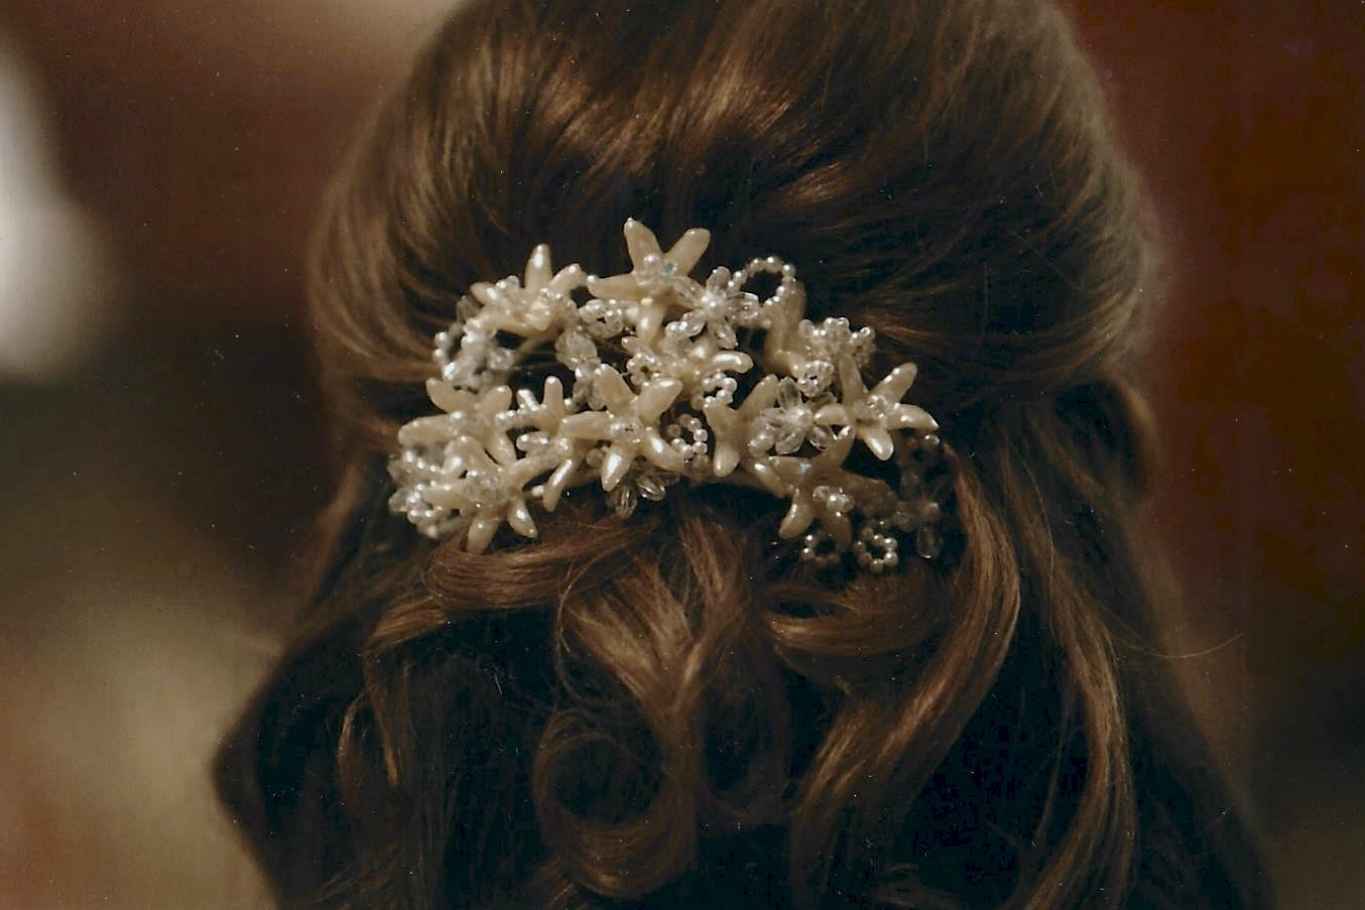 In 2009, Amy's sister Dana wore the wax flower headpiece for her wedding, followed by their cousin Alissa in 2013.